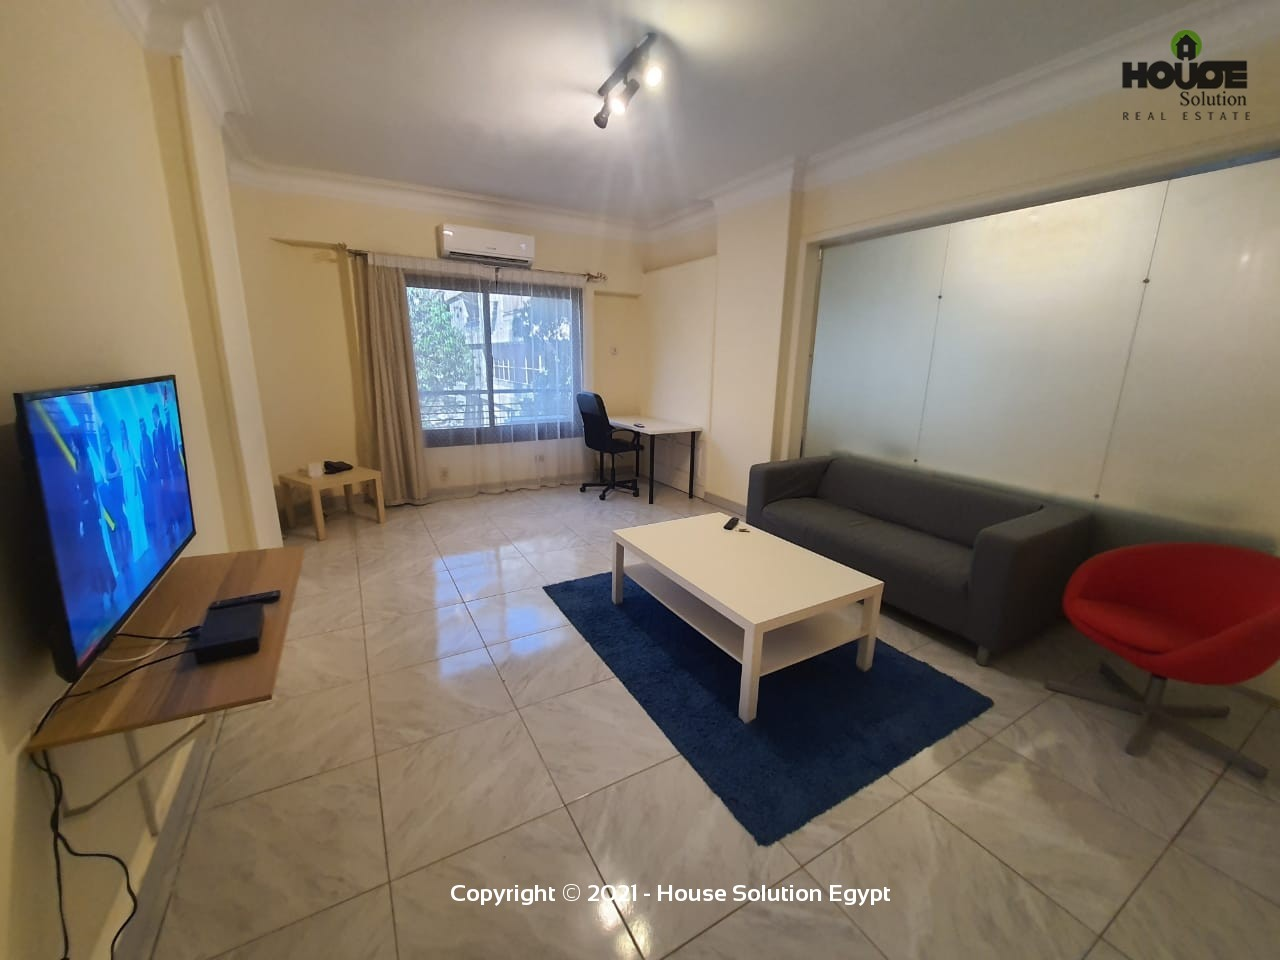 Modern Furnished Apartment For Rent In Sarayat El Maadi - 4948 Featured Image